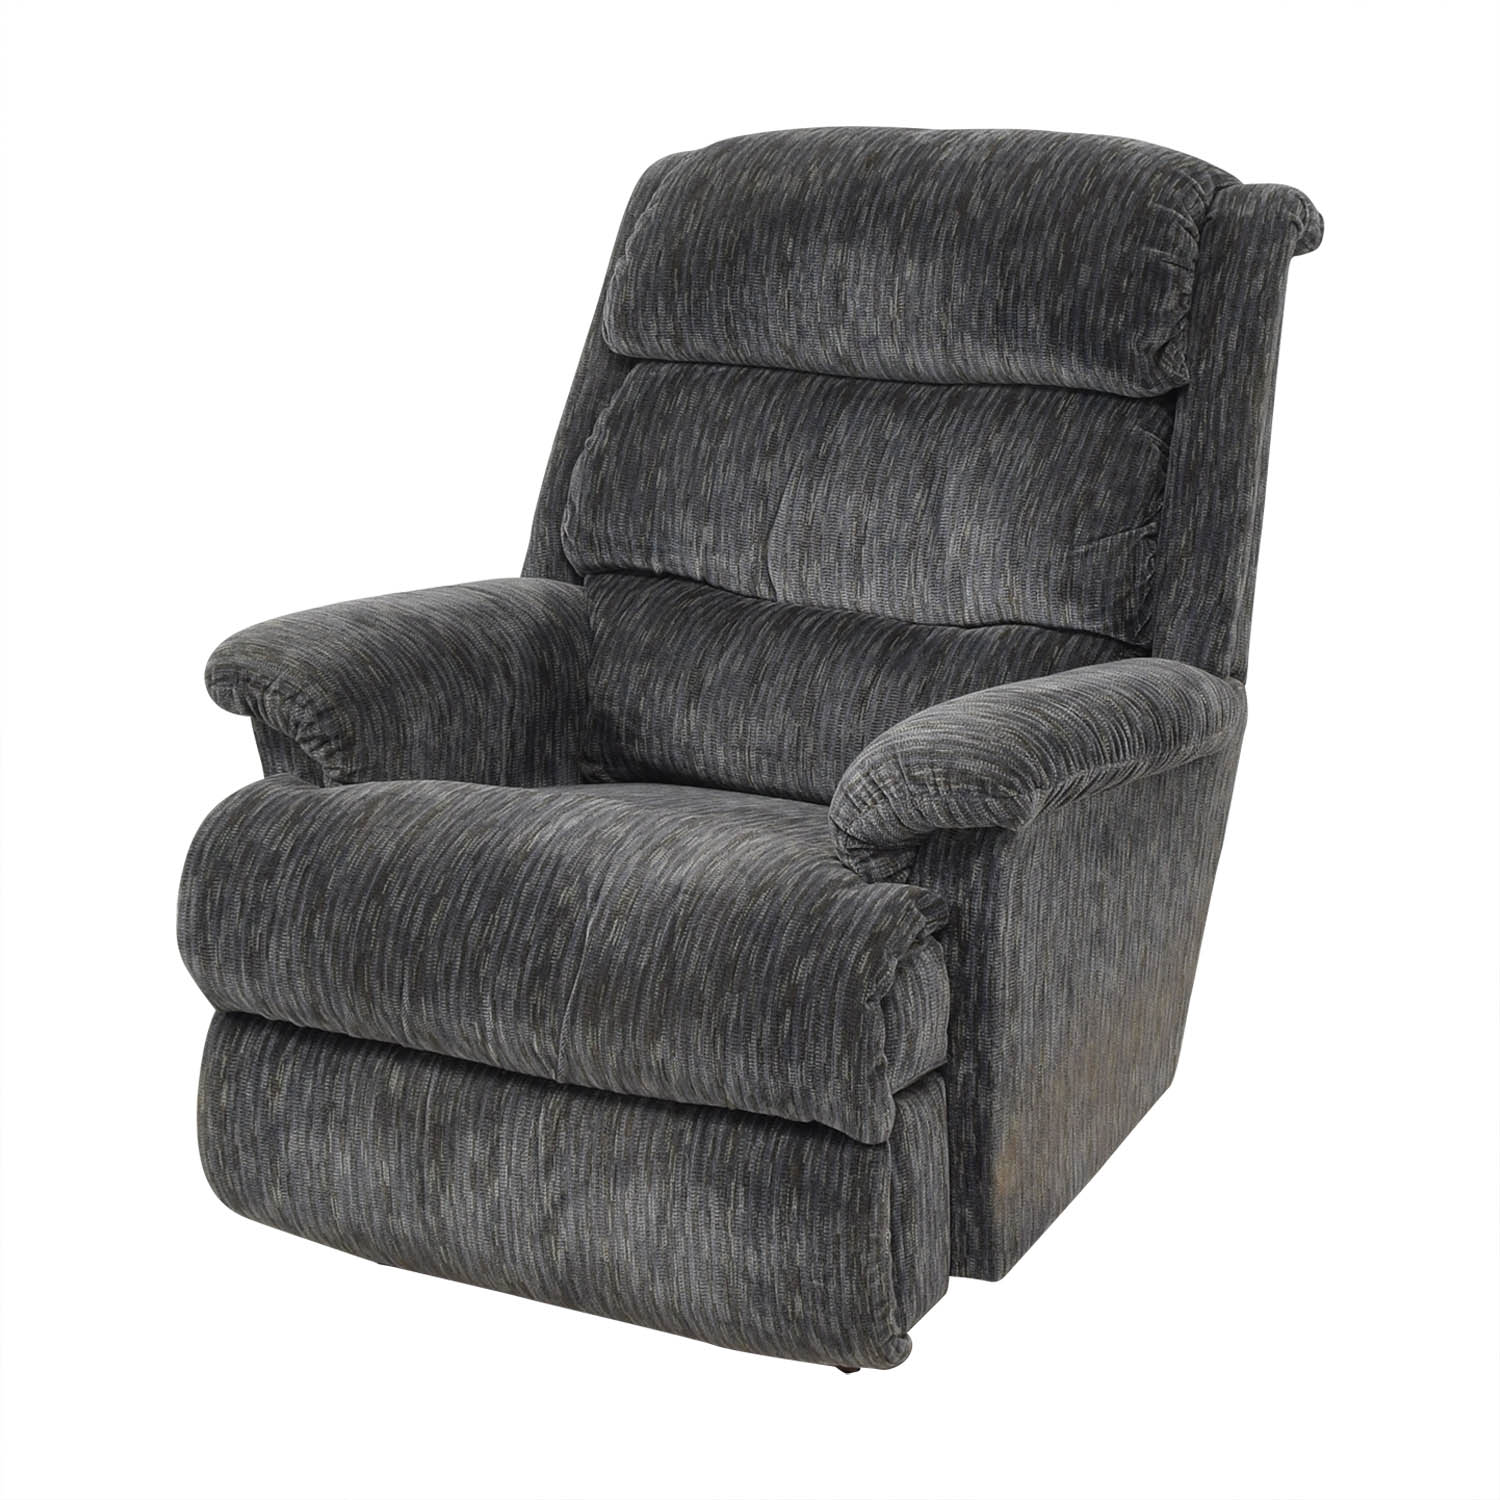 La-Z-Boy La-Z-Boy Overstuffed Recliner used